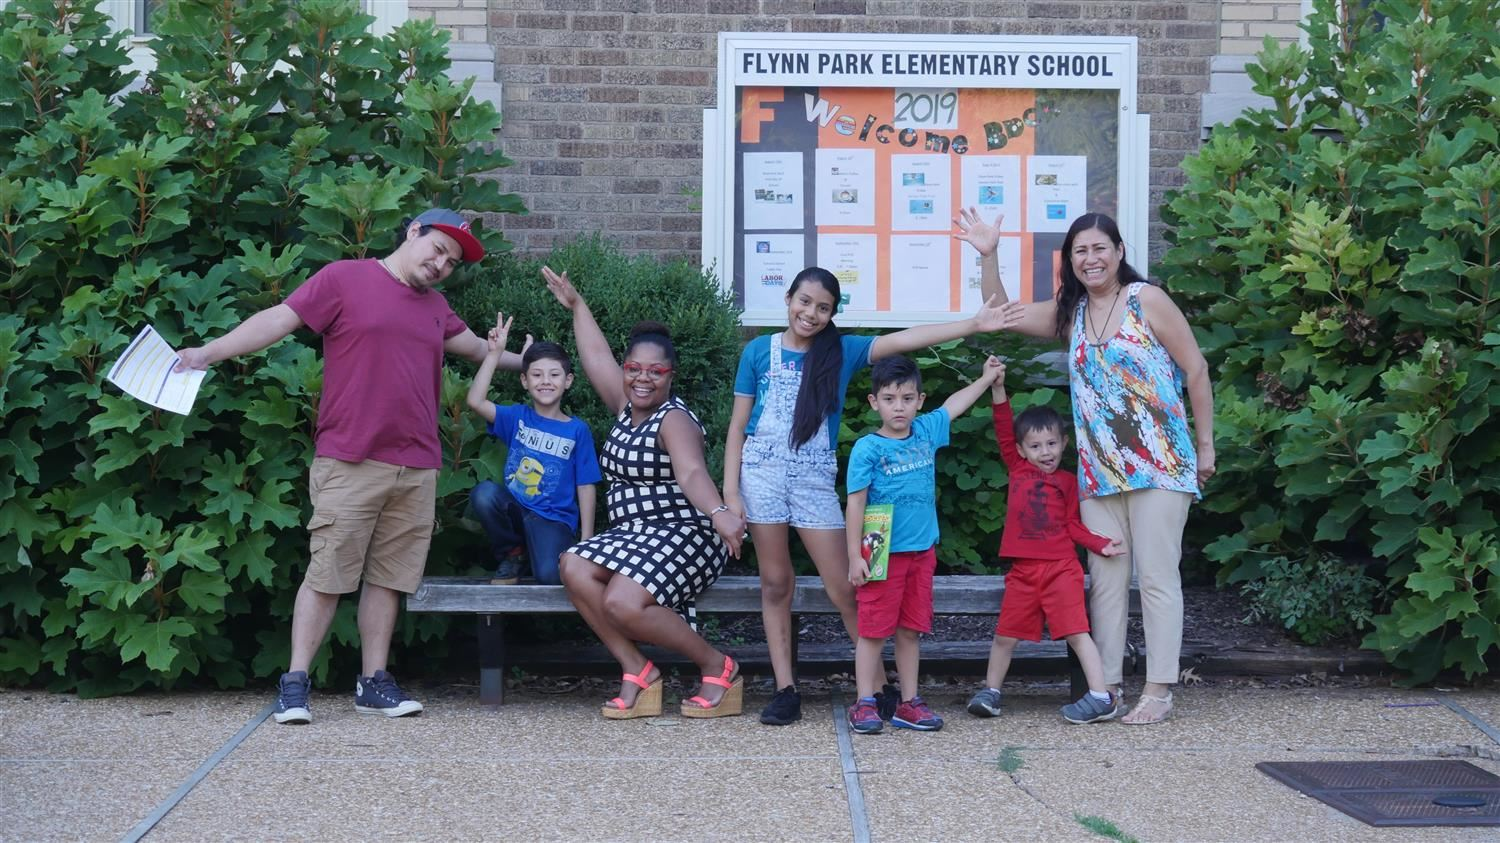 Flynn Park Elementary Honored as a 2019 Bayer School of Excellence